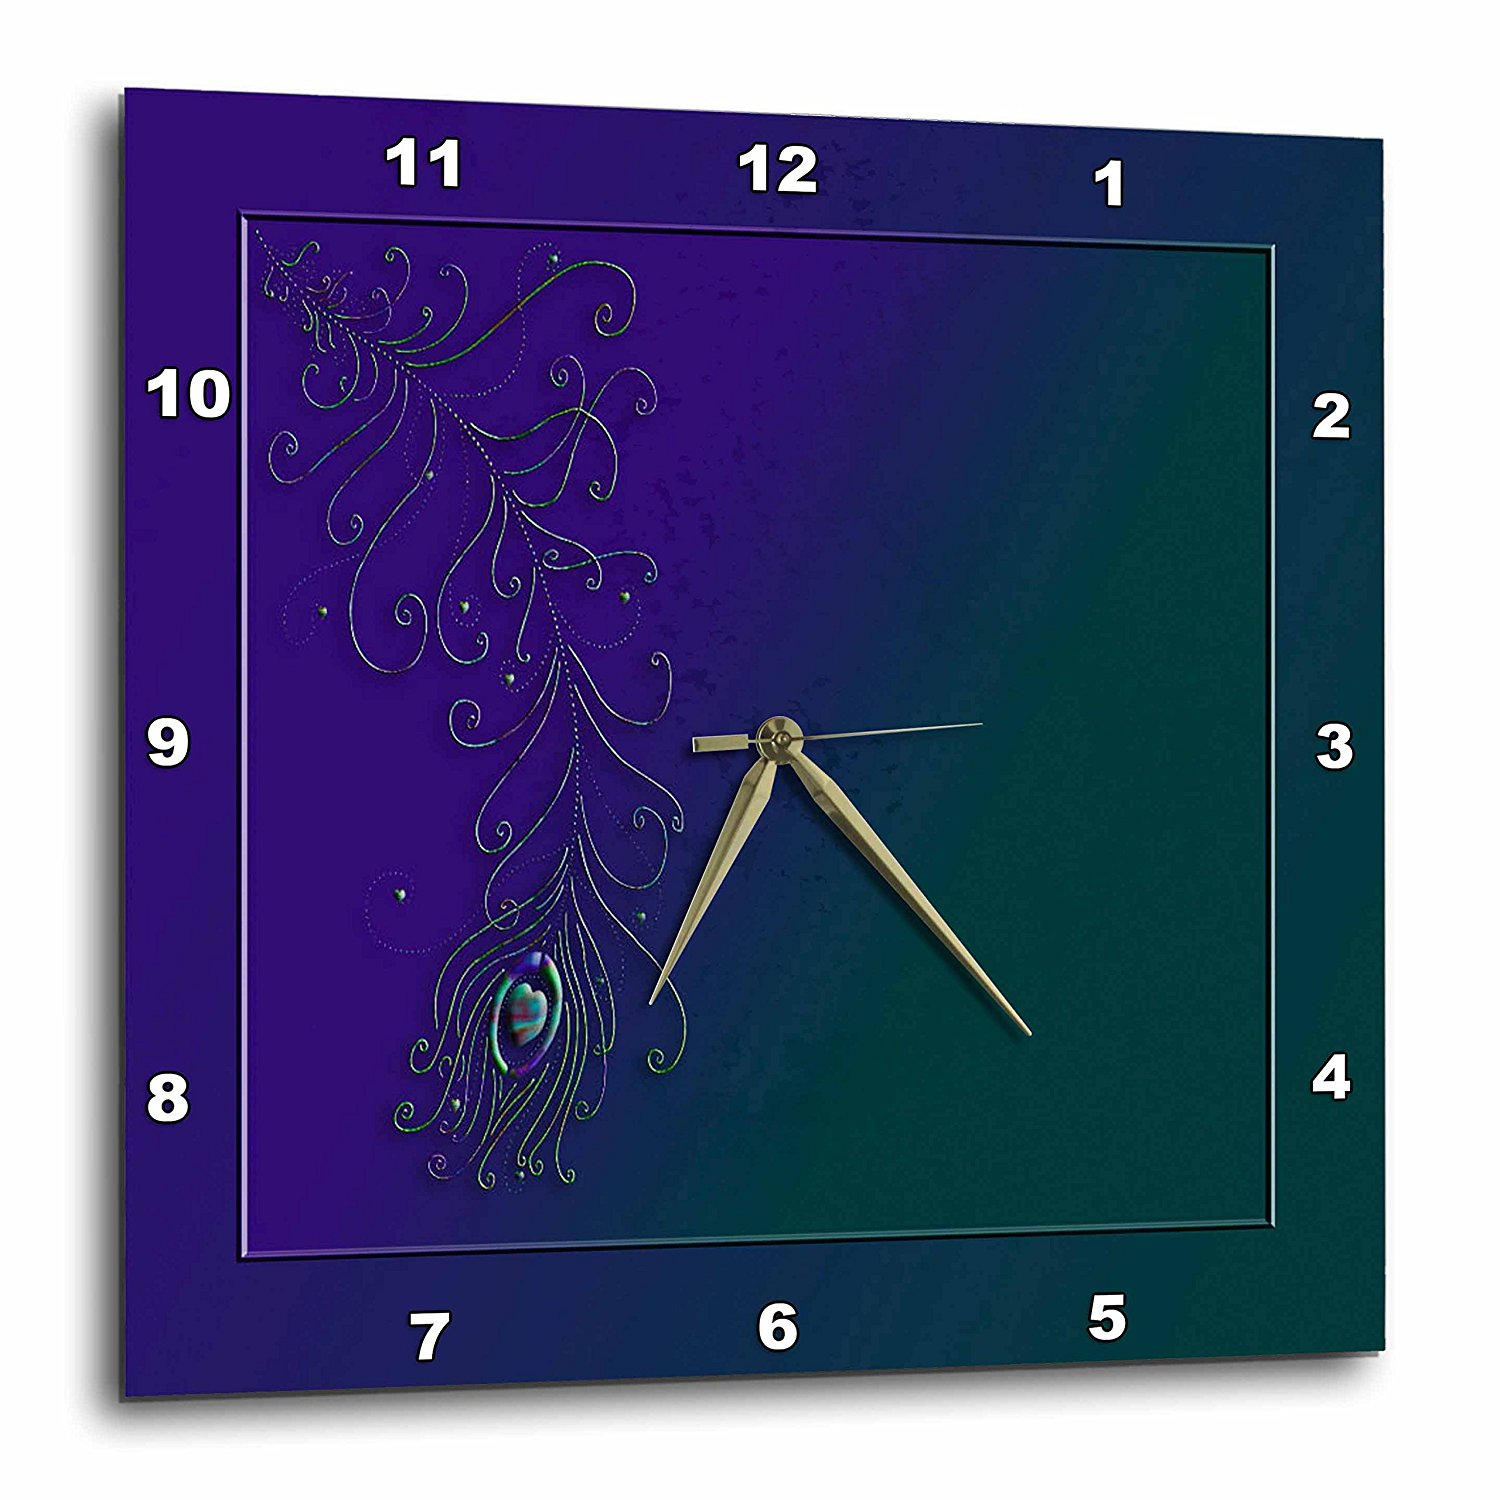 3dRose Peacock Feather, Teal and Purple, Wall Clock, 15 by 15-inch